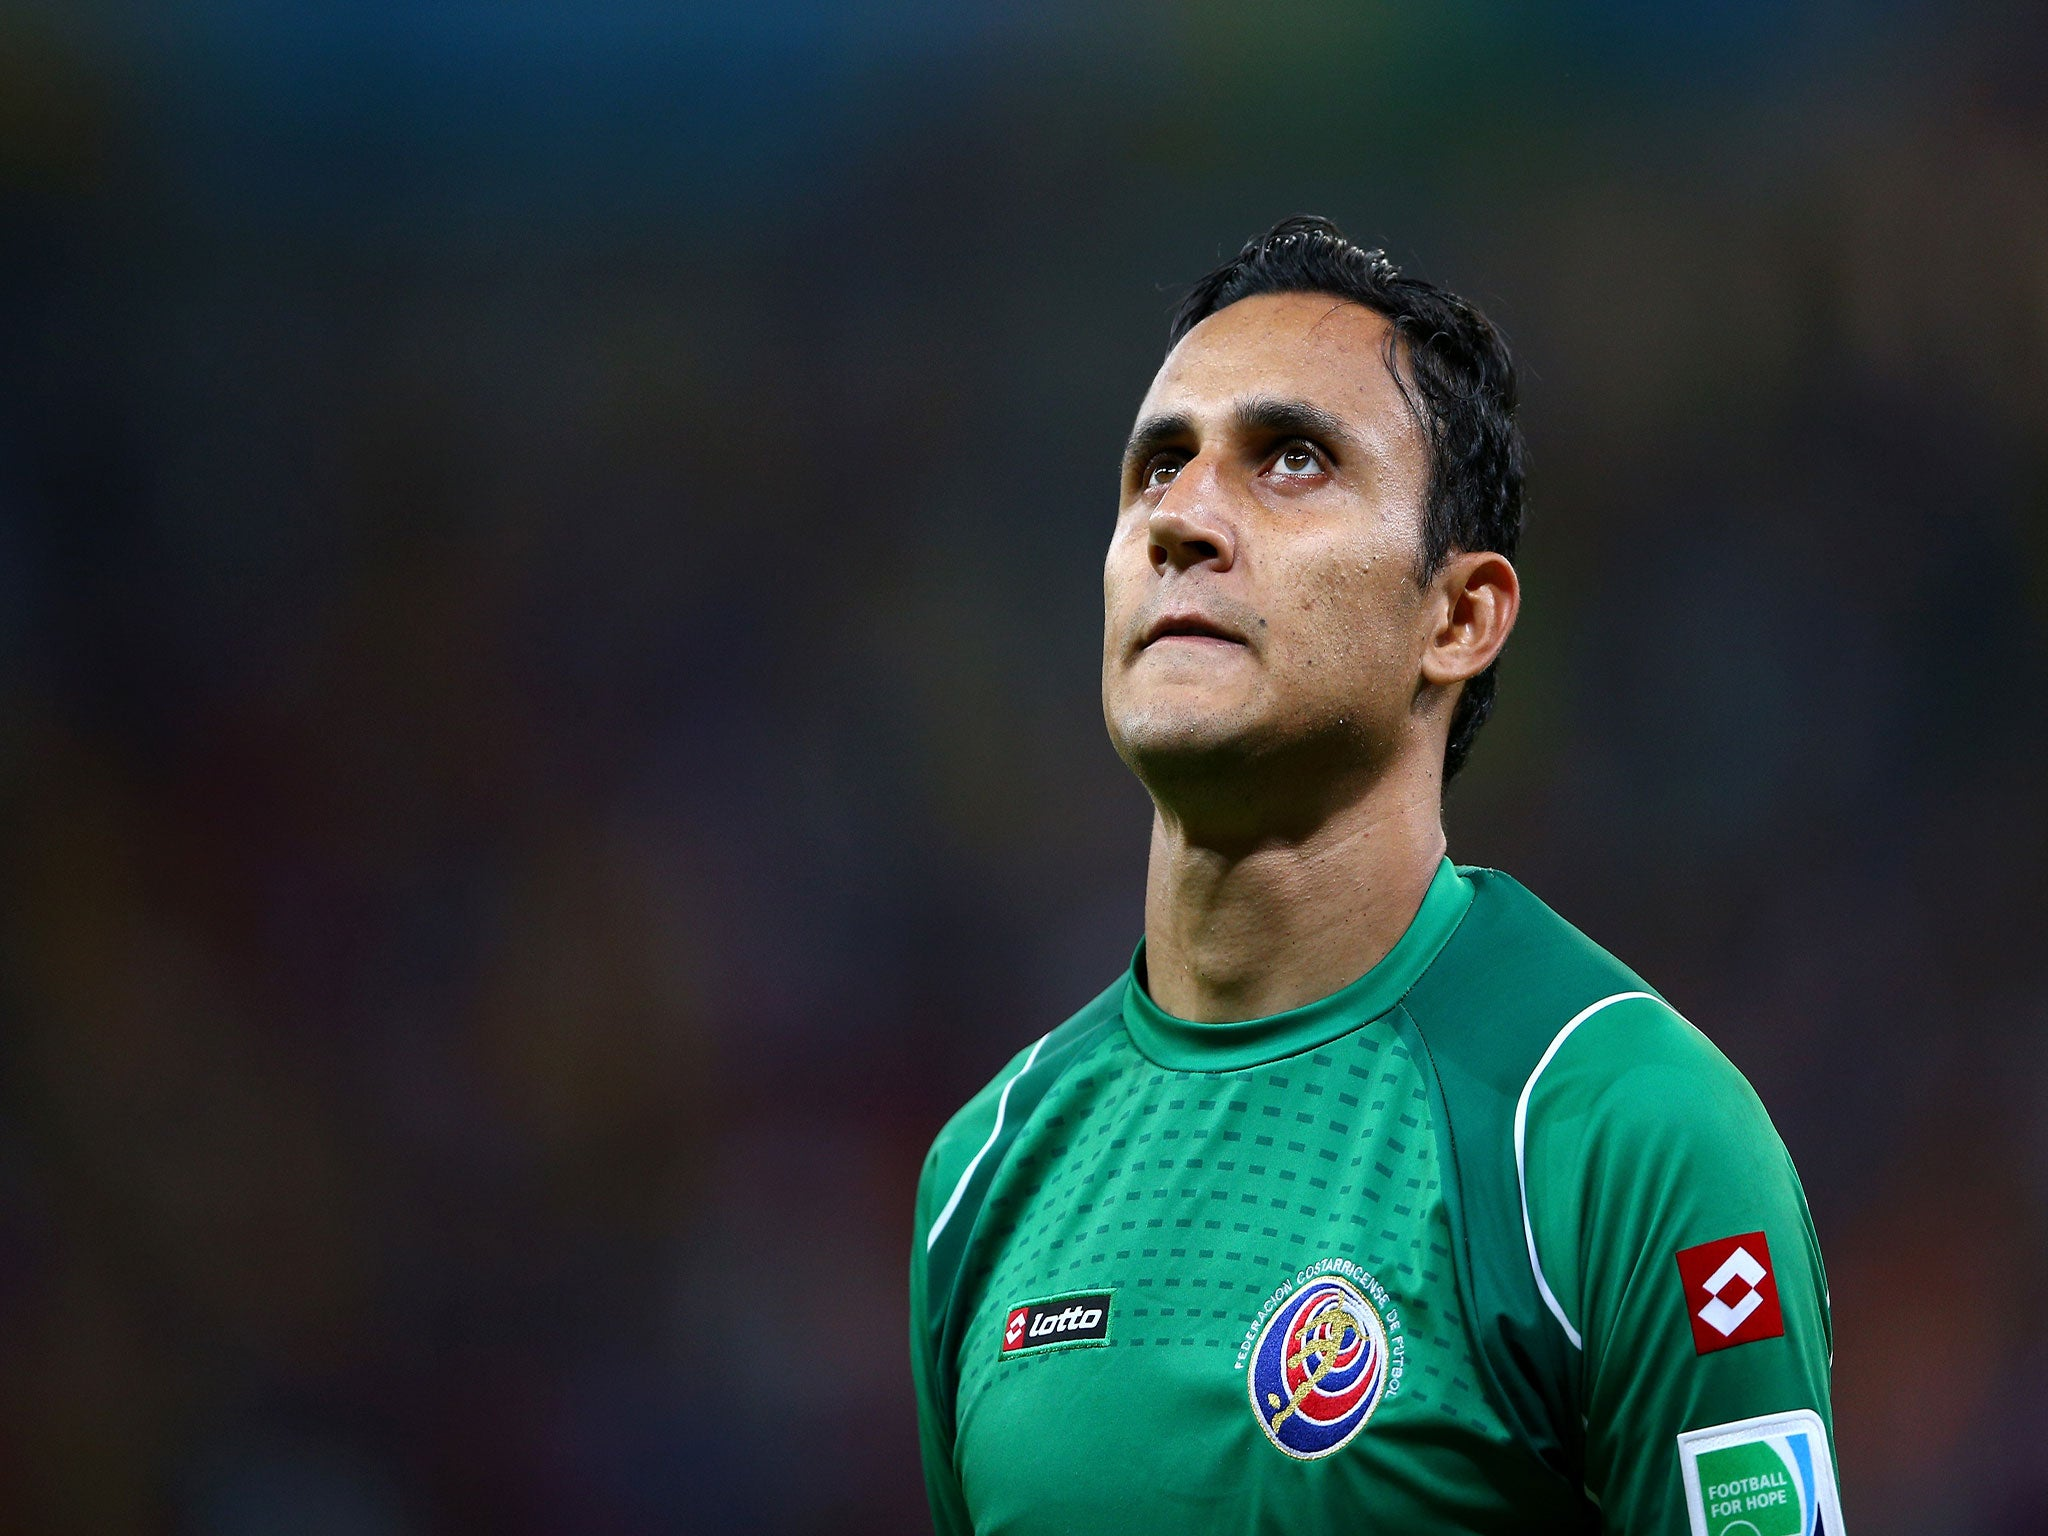 Keylor Navas Who is the Costa Rica goalkeeper Arsenal are